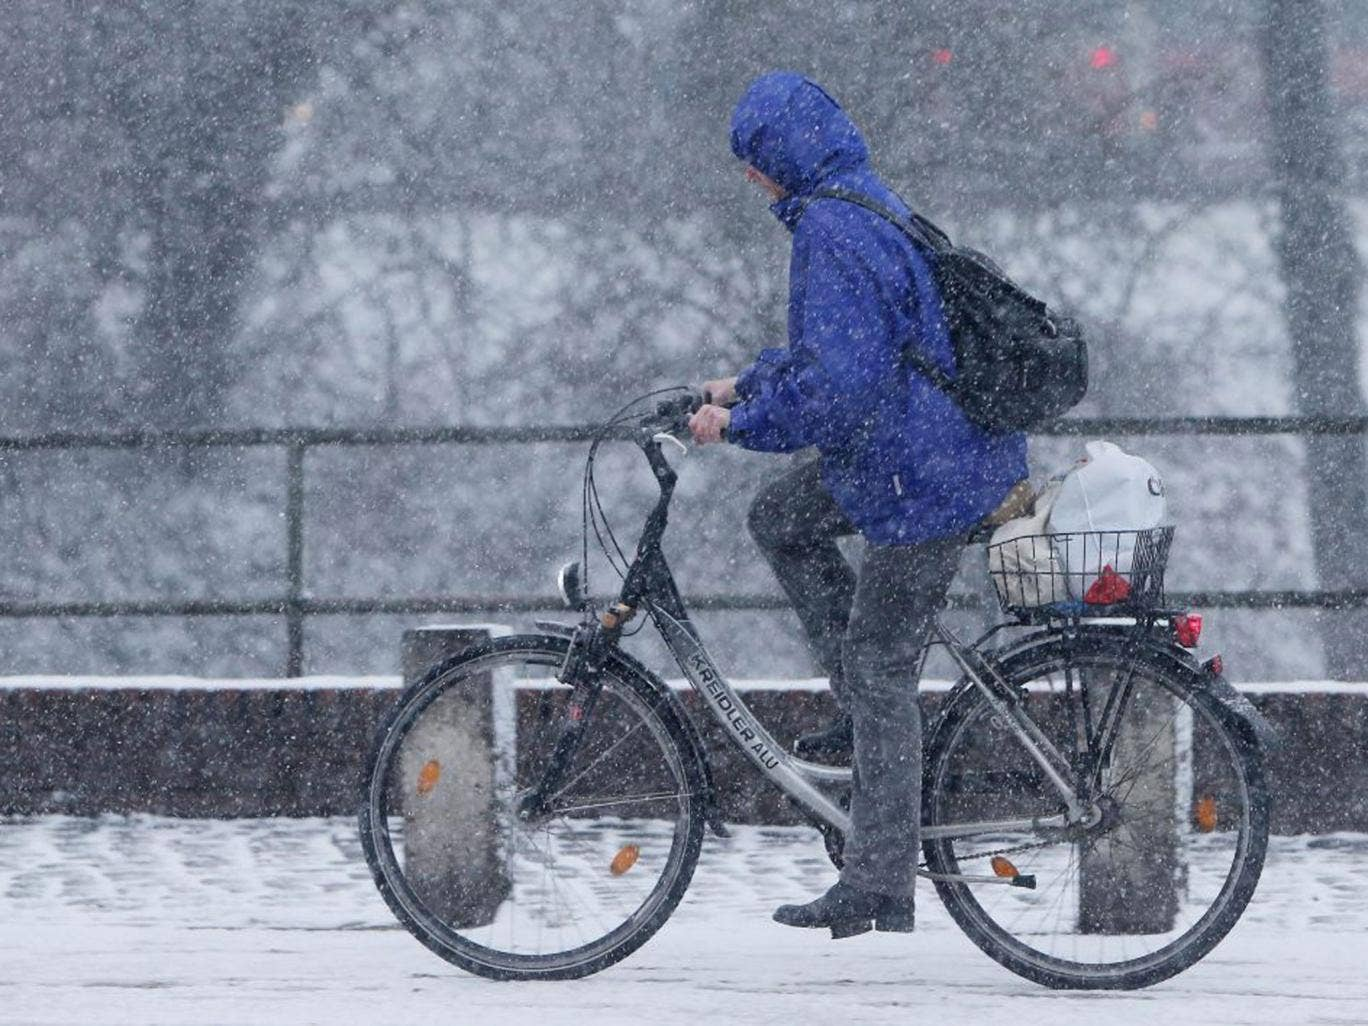 Snow is expected to fall across the country this weekend as plummeting temperatures usher in a cold snap